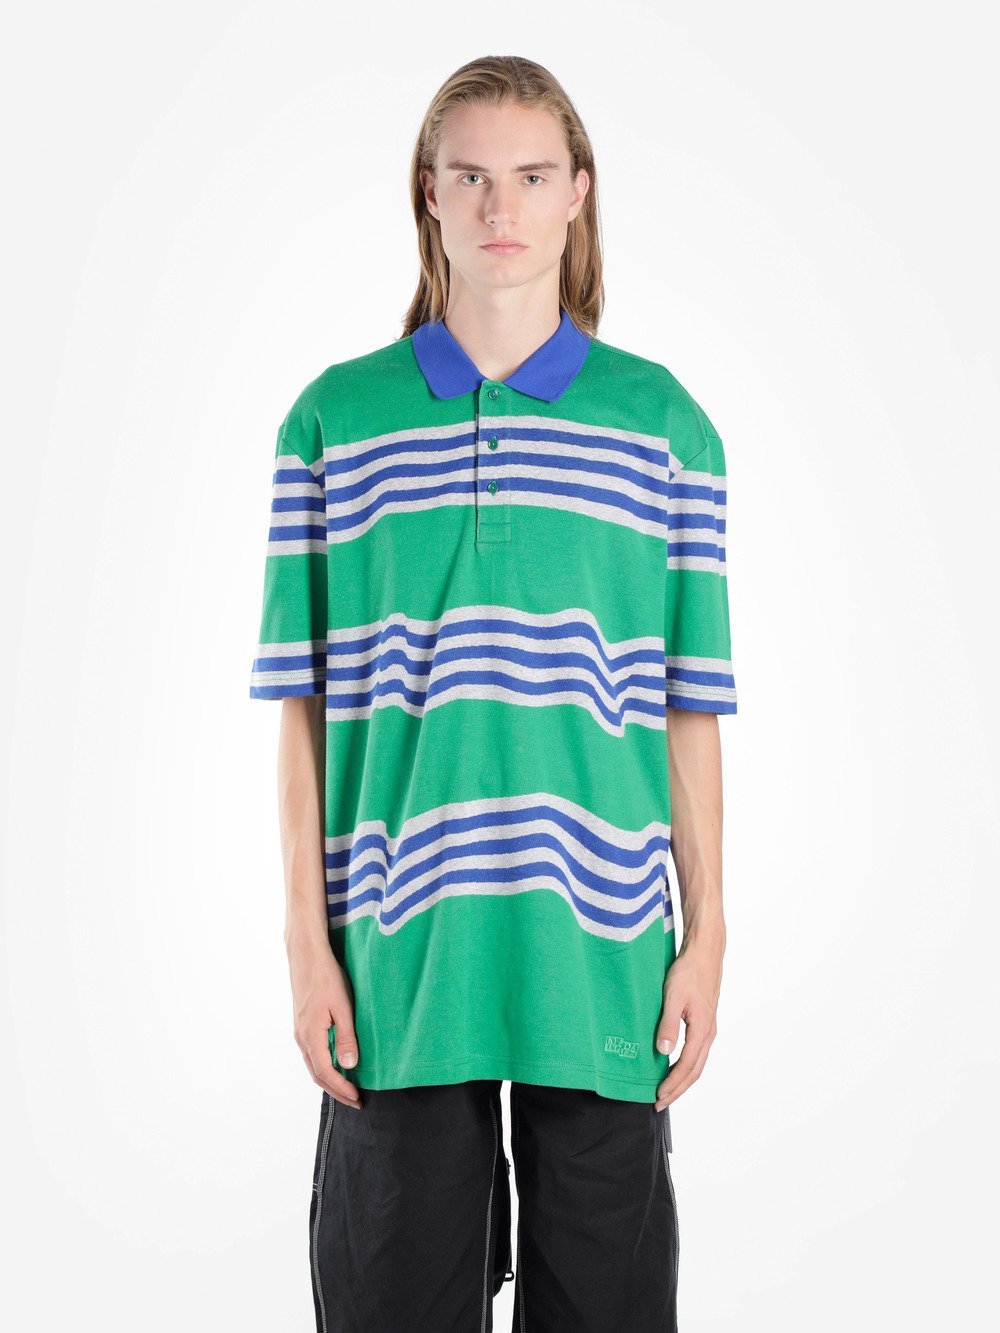 NAPA BY MARTINE ROSE EGO STRIPED COTTON OVERSIZED POLO SHIRT